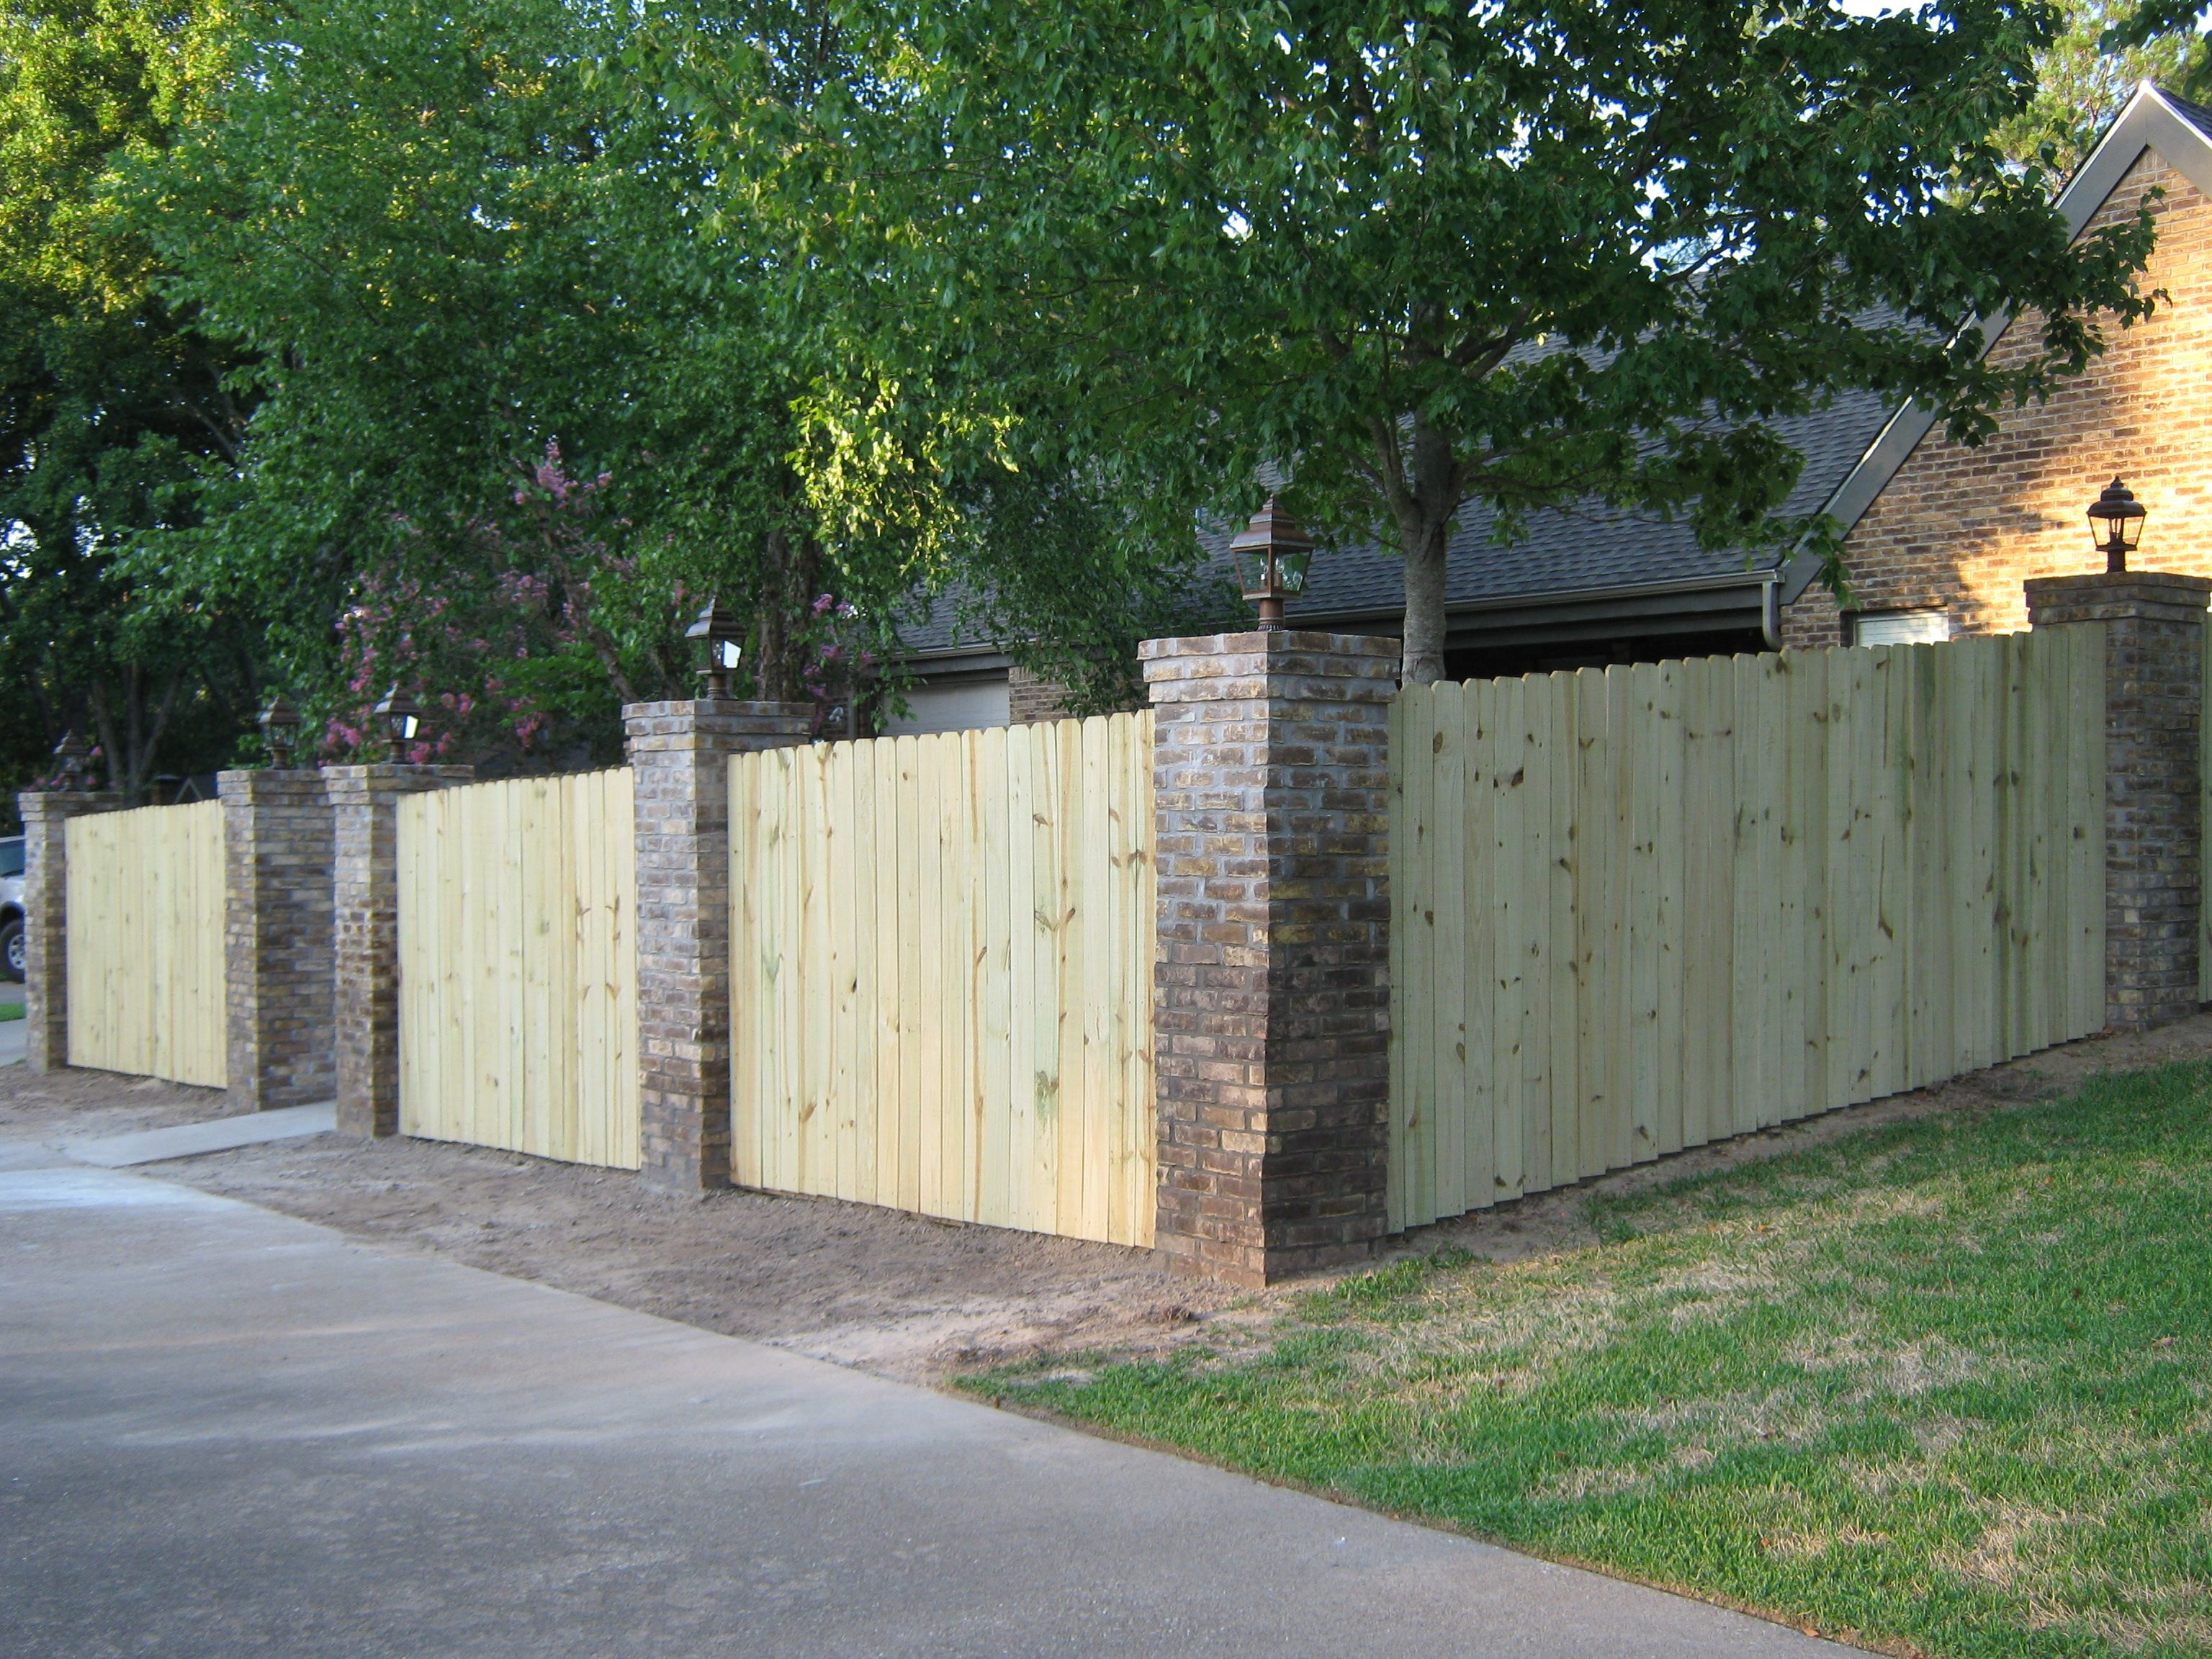 brick and wood fence | Fence design, Fence landscaping